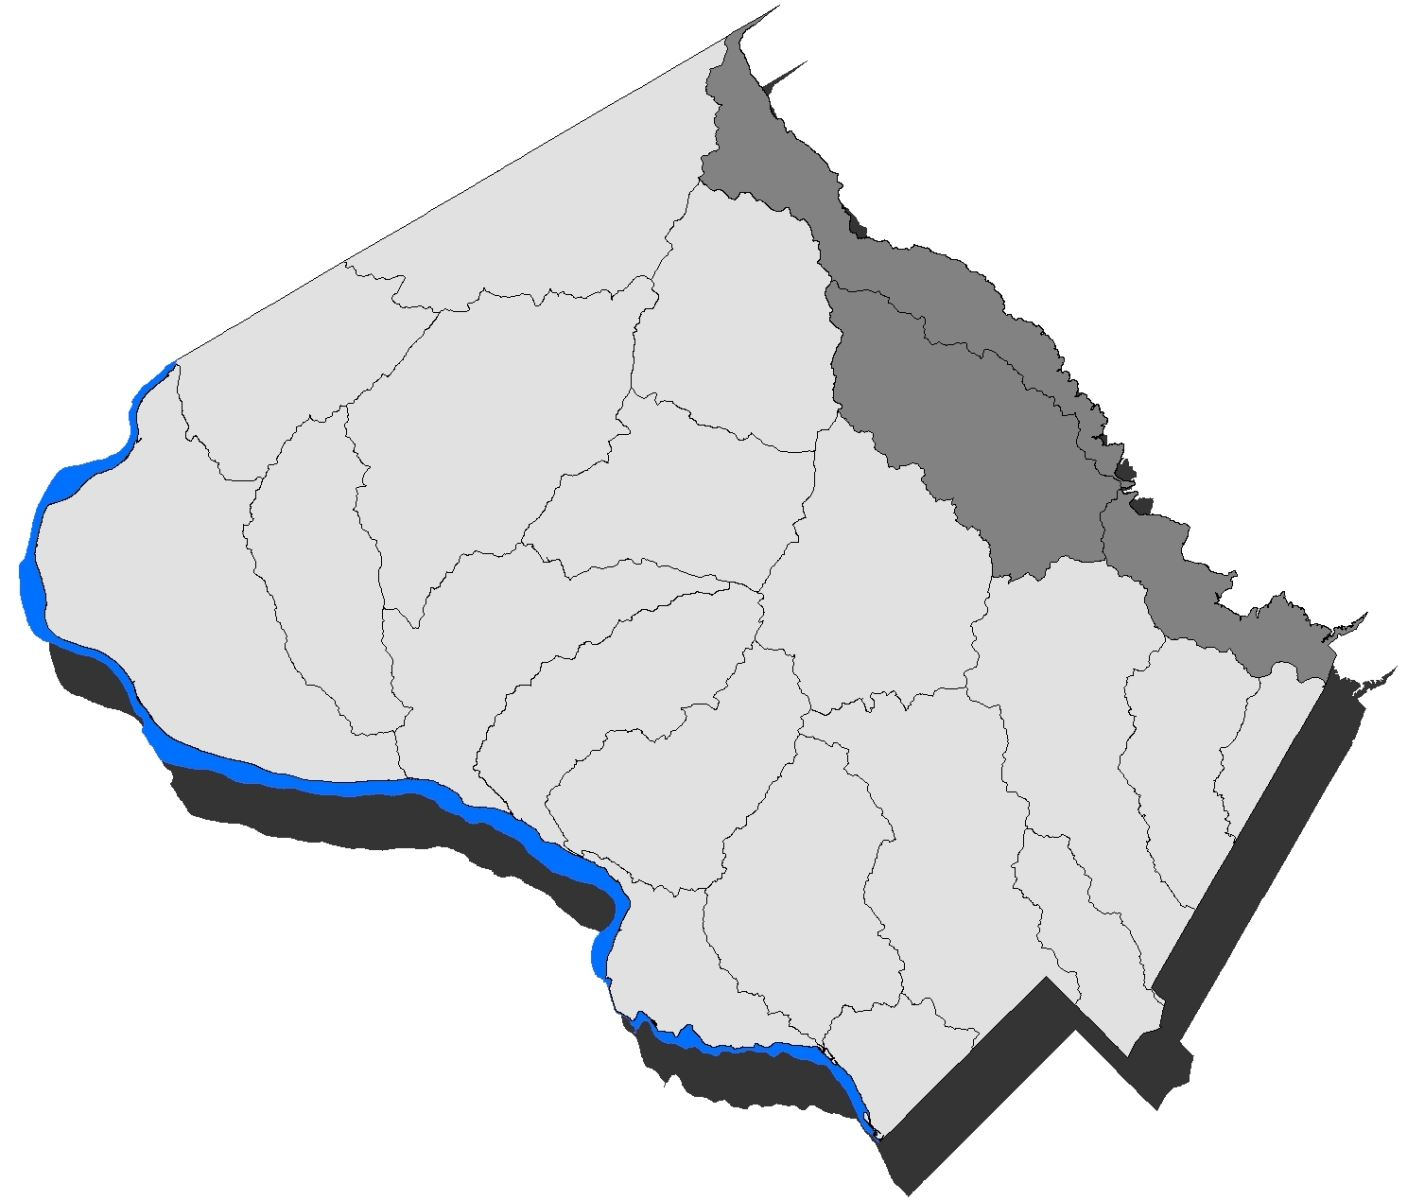 Map of the County with the Patuxent River watershed highlighted.